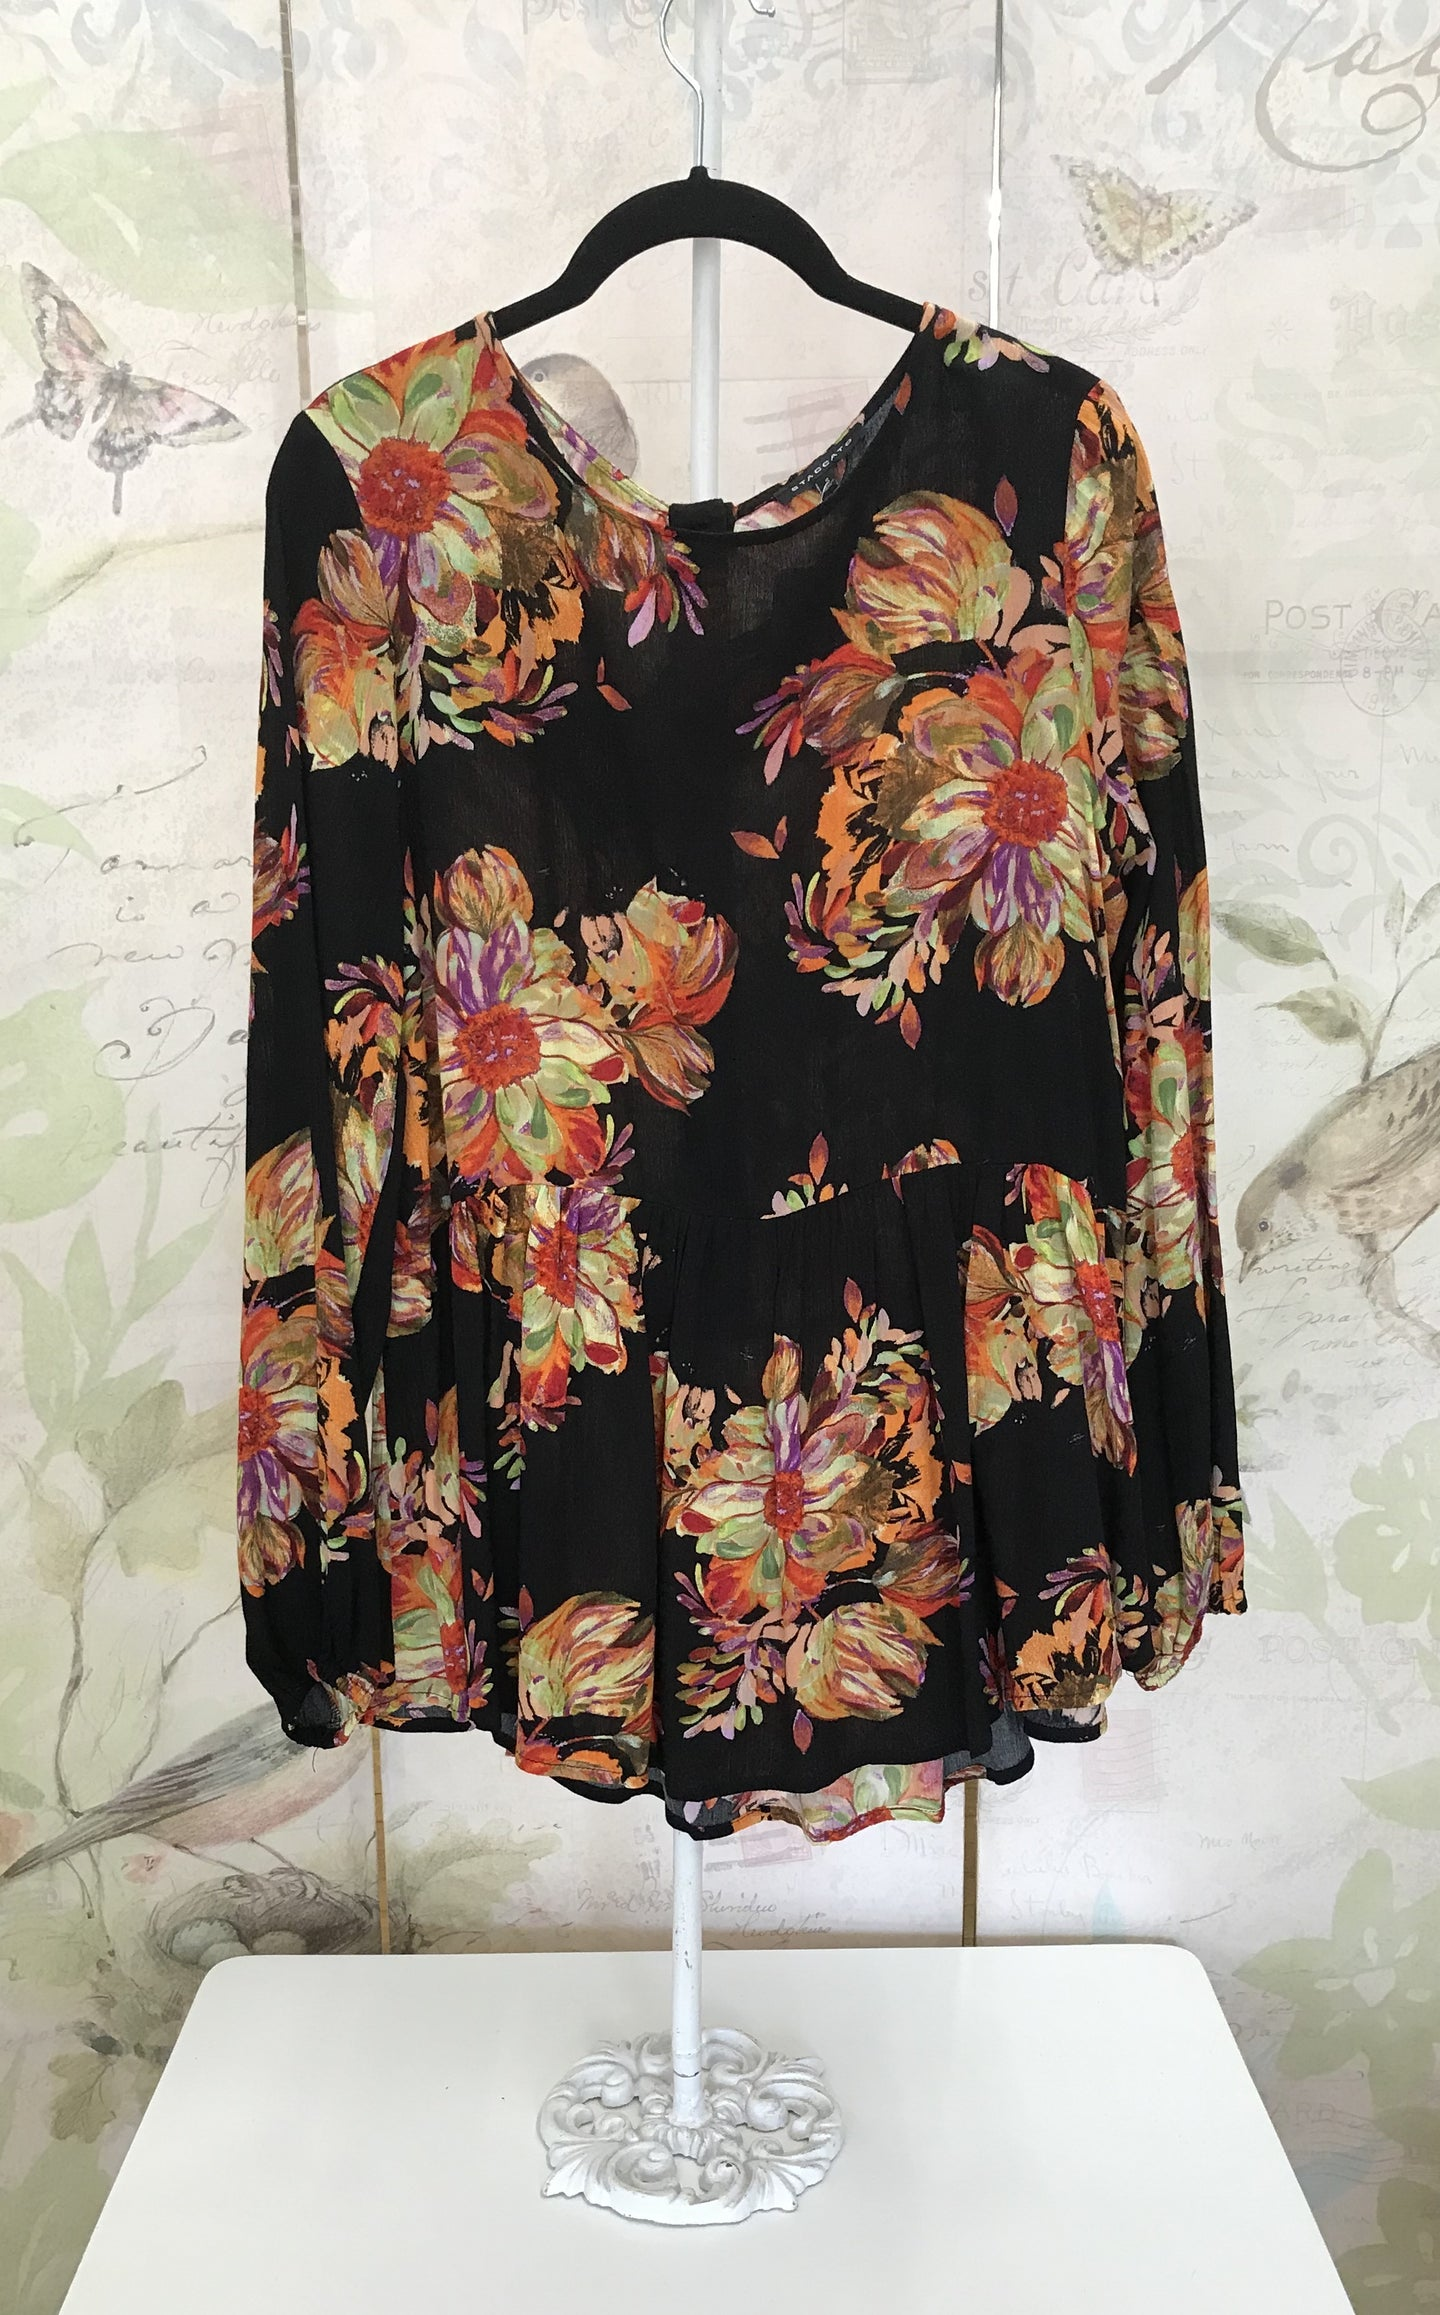 Floral Print Blouse with Peplum Bottom